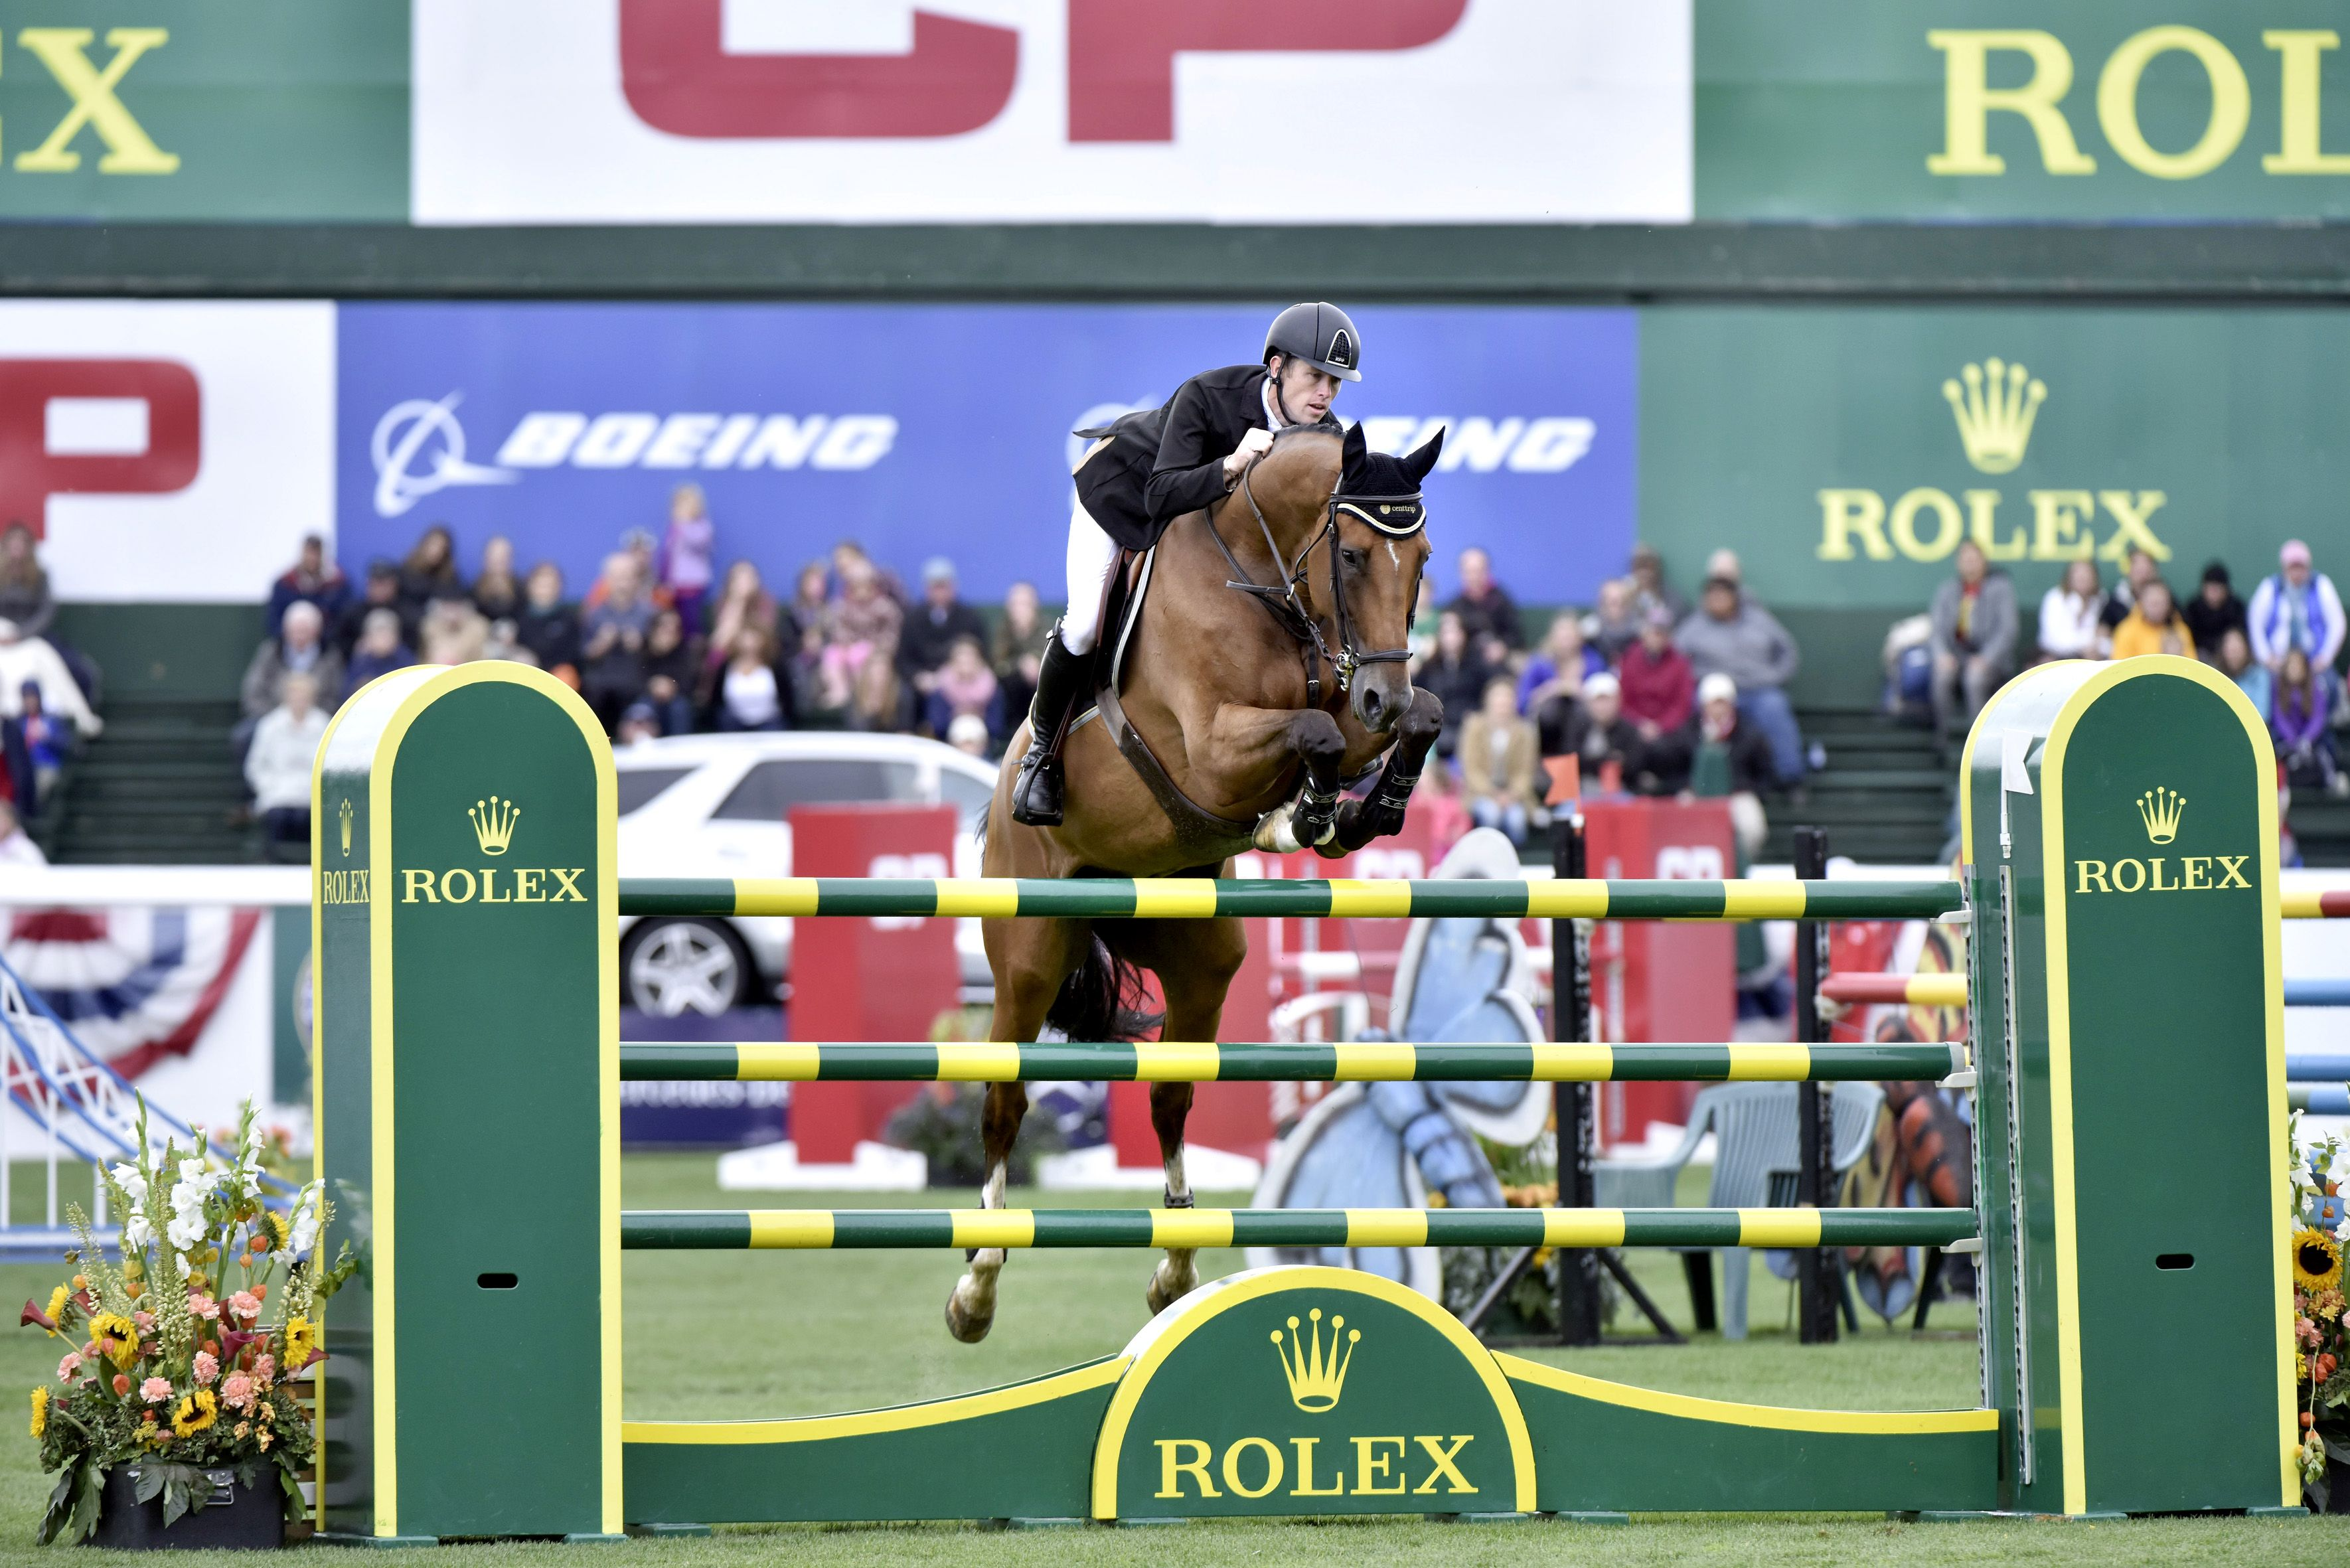 A glimpse inside the glamorous world of showjumping